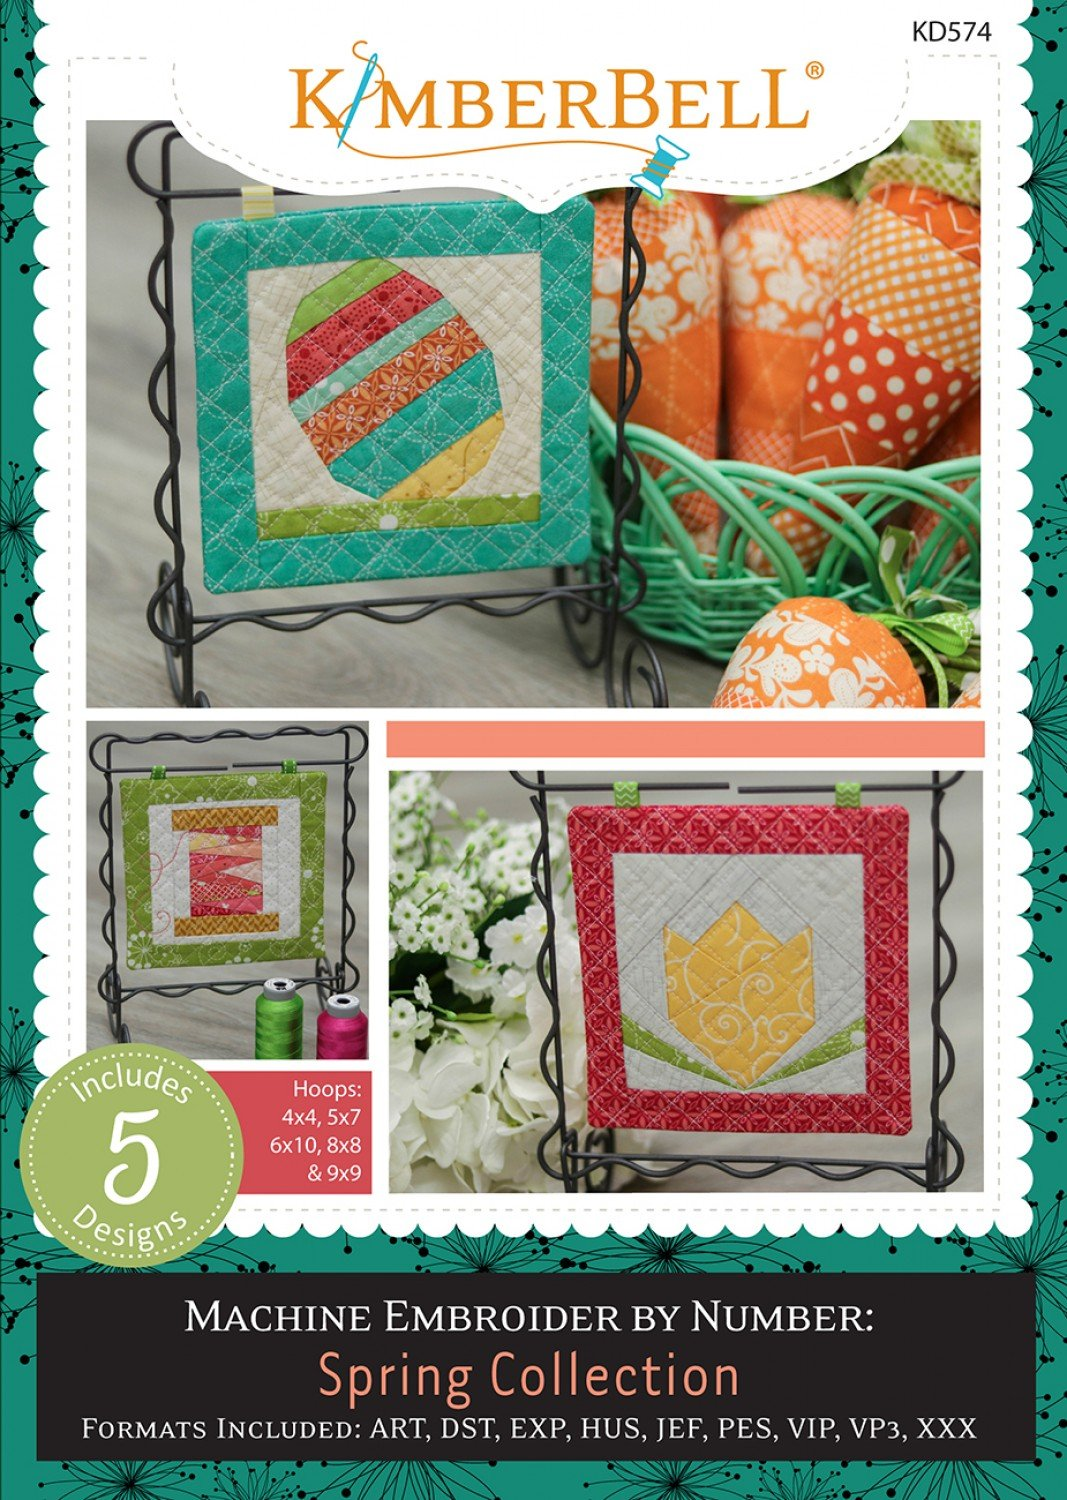 Machine Embroider by Number - Spring Collection CD